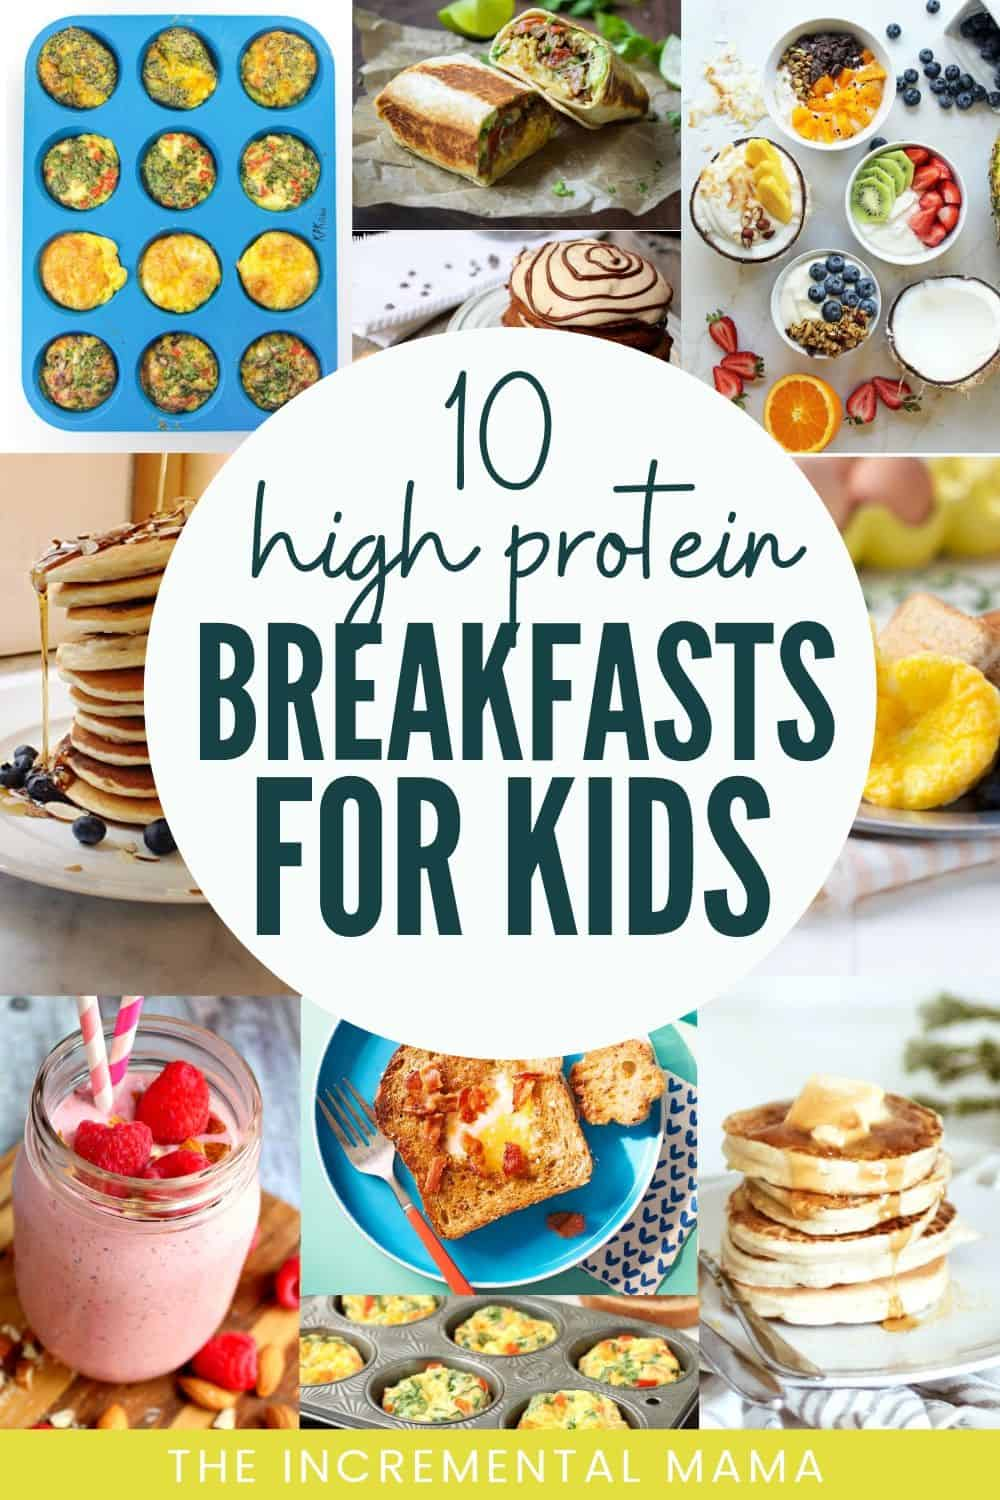 high protein breakfasts for kids